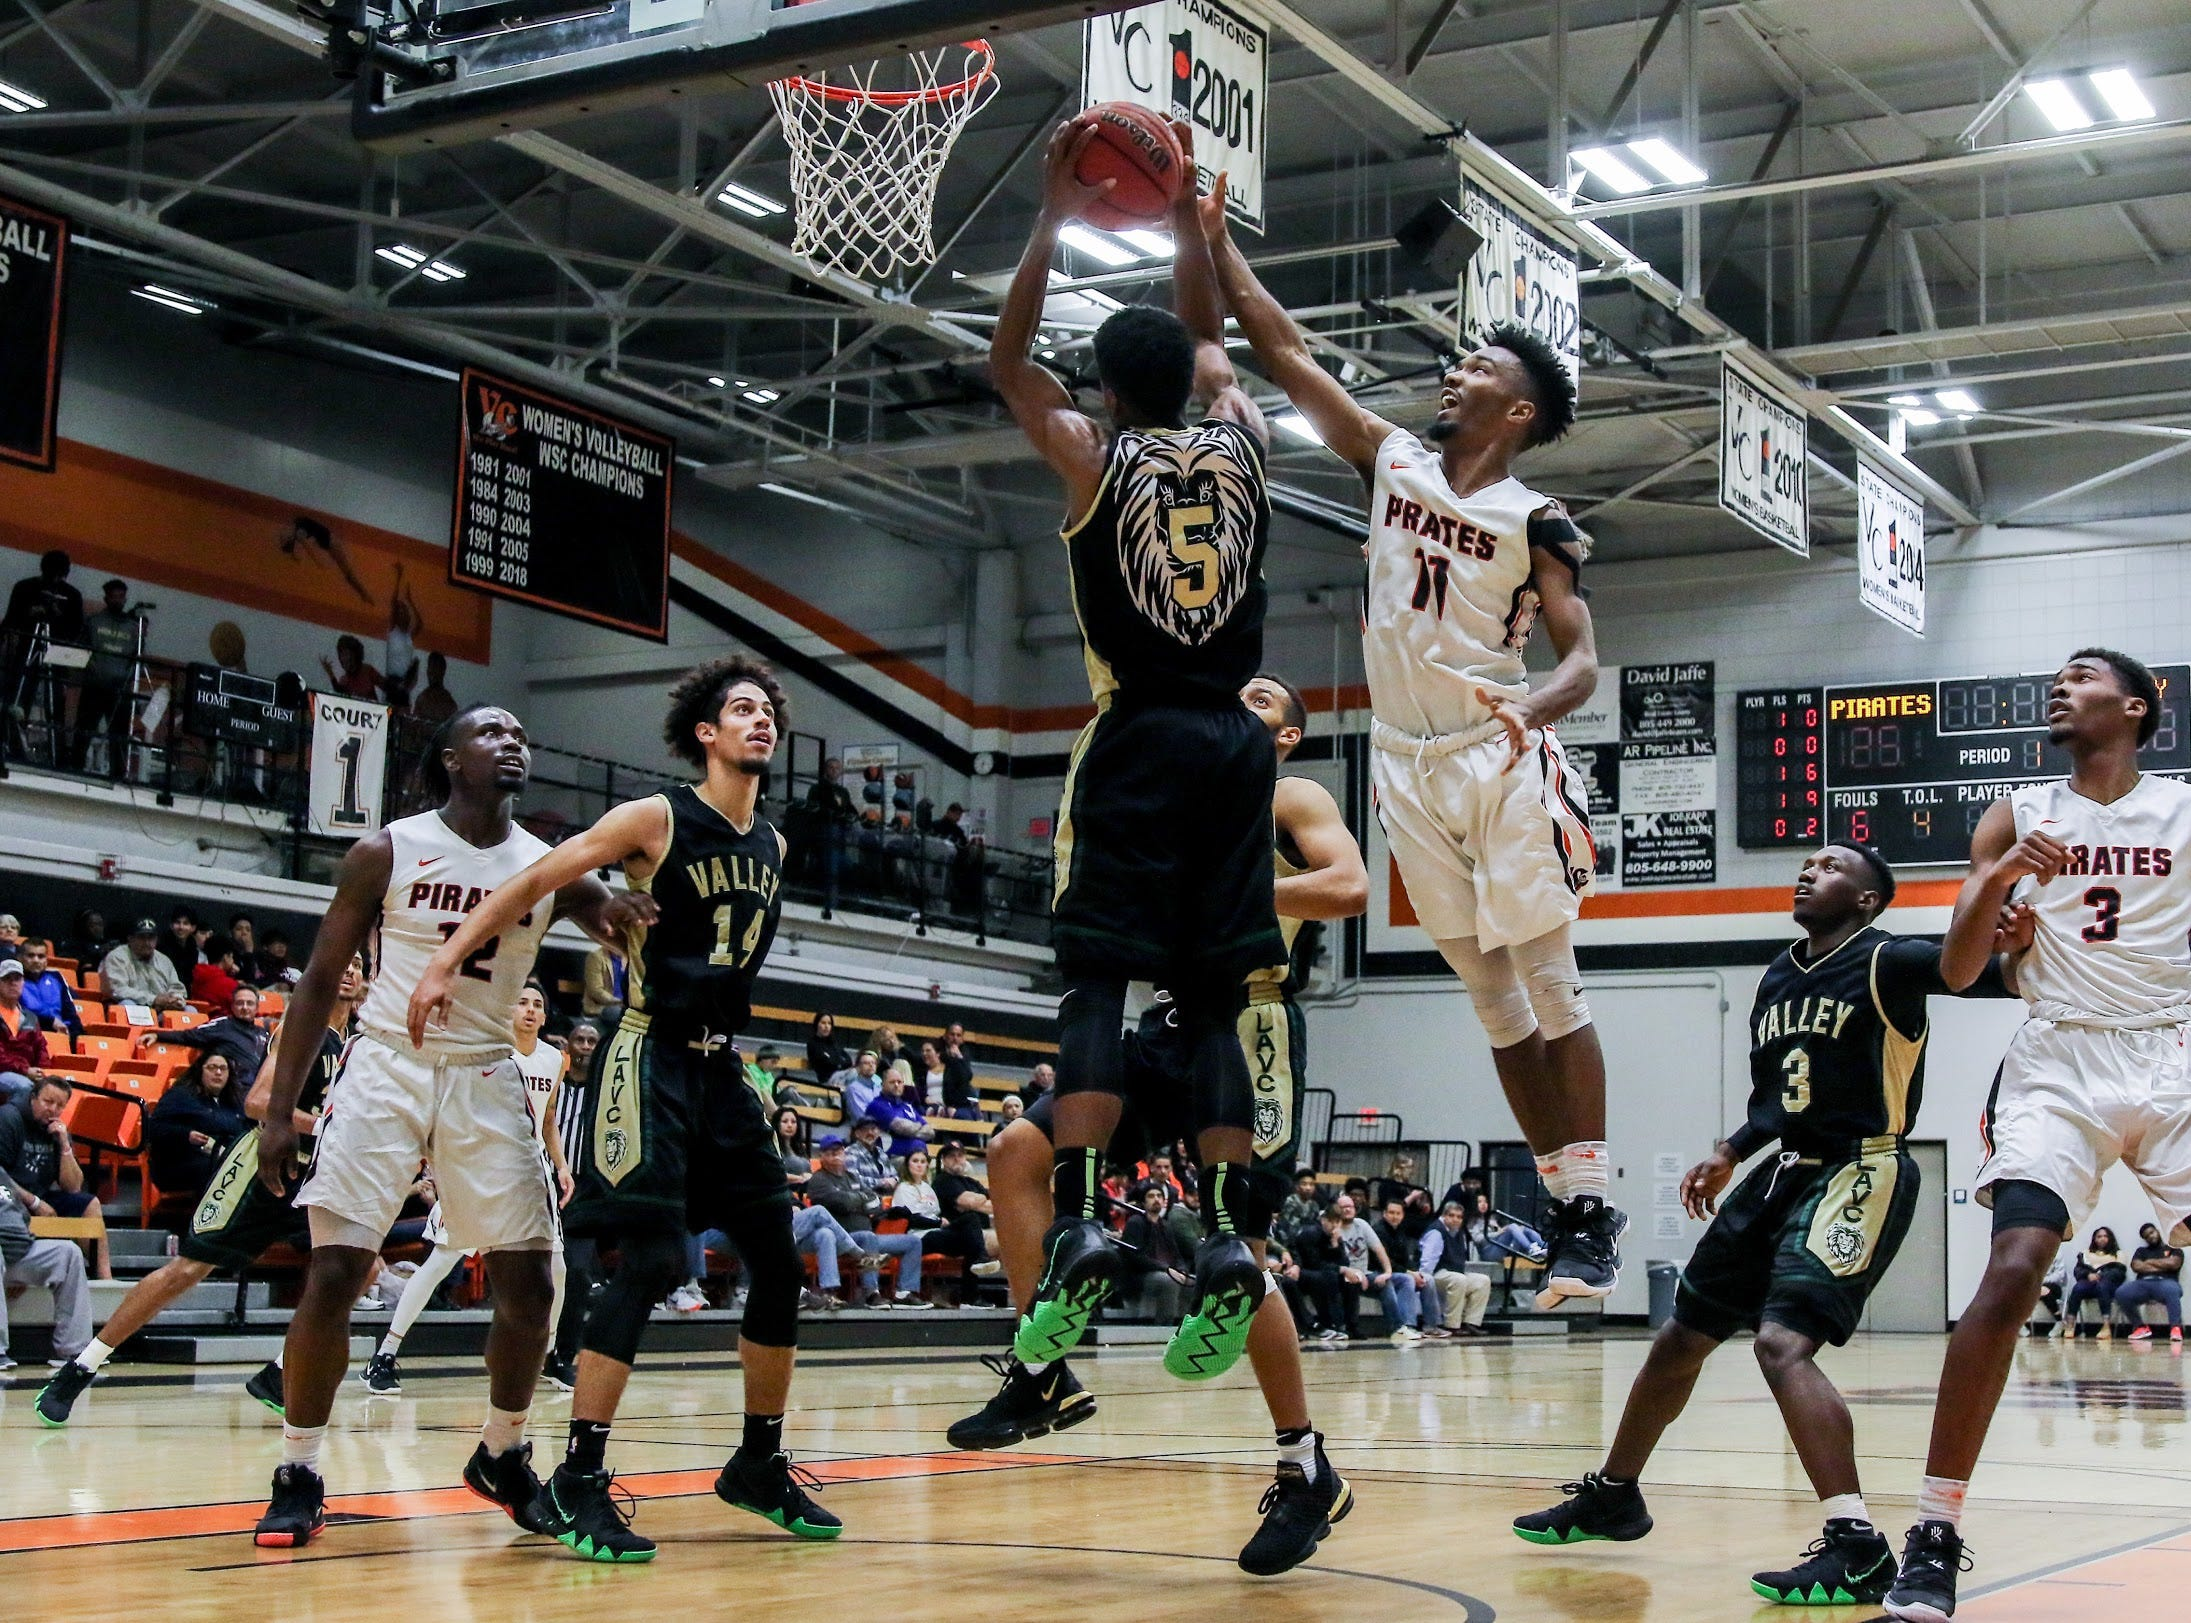 Ventura College sophomore Lamont Landers, right, challenges Los Angeles Valley's Micah Cooper for a rebound during Wednesday night's CCCAA Southern California regional quarterfinal at the VC Athletic Event Center. L.A. Valley won, 78-74.